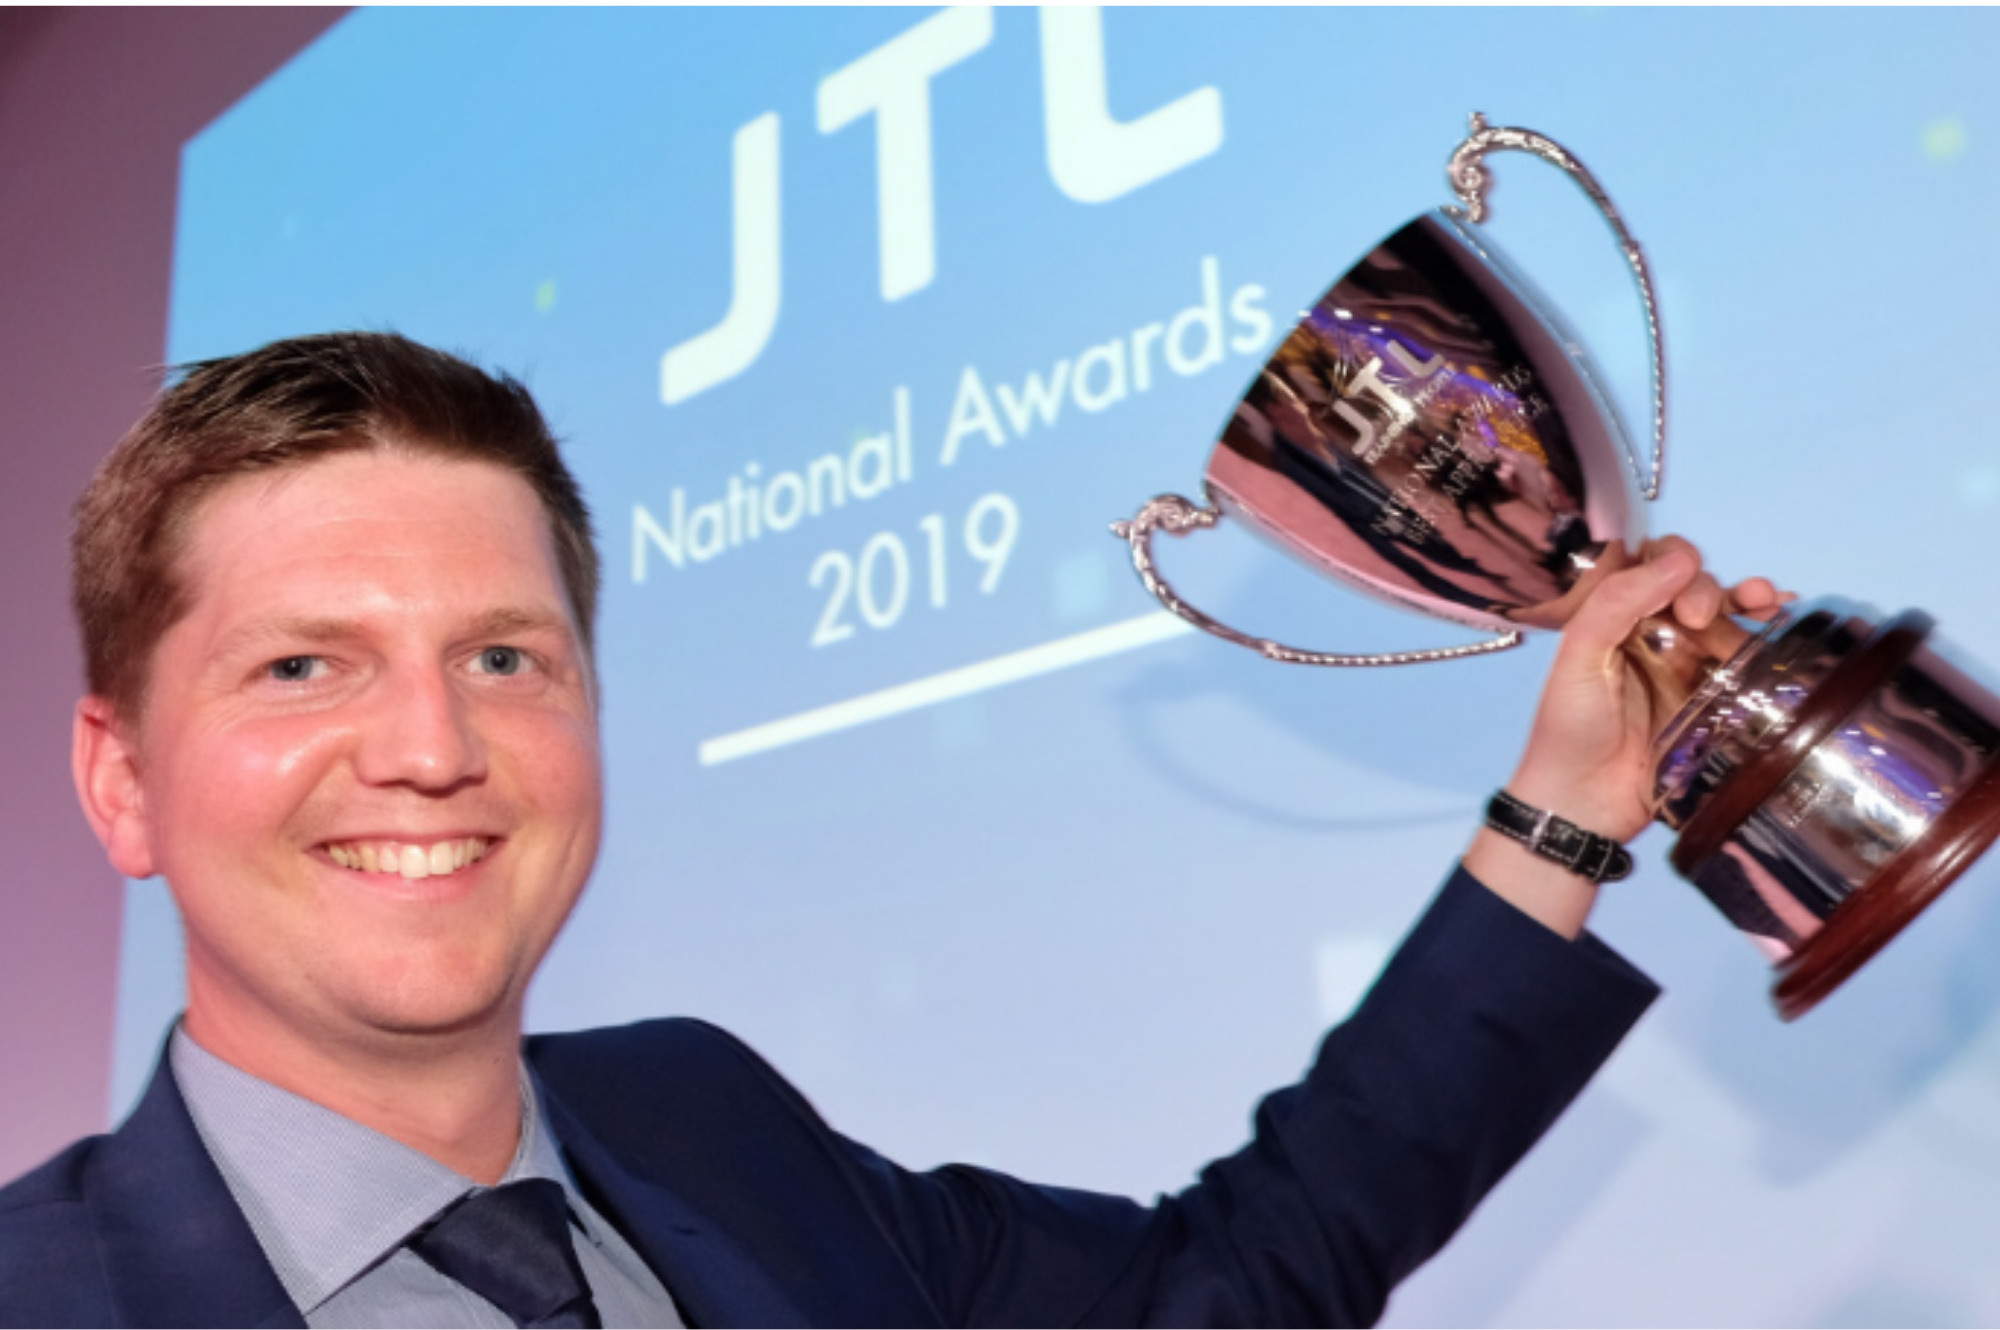 Winners Announced at JTL's National Awards 2019